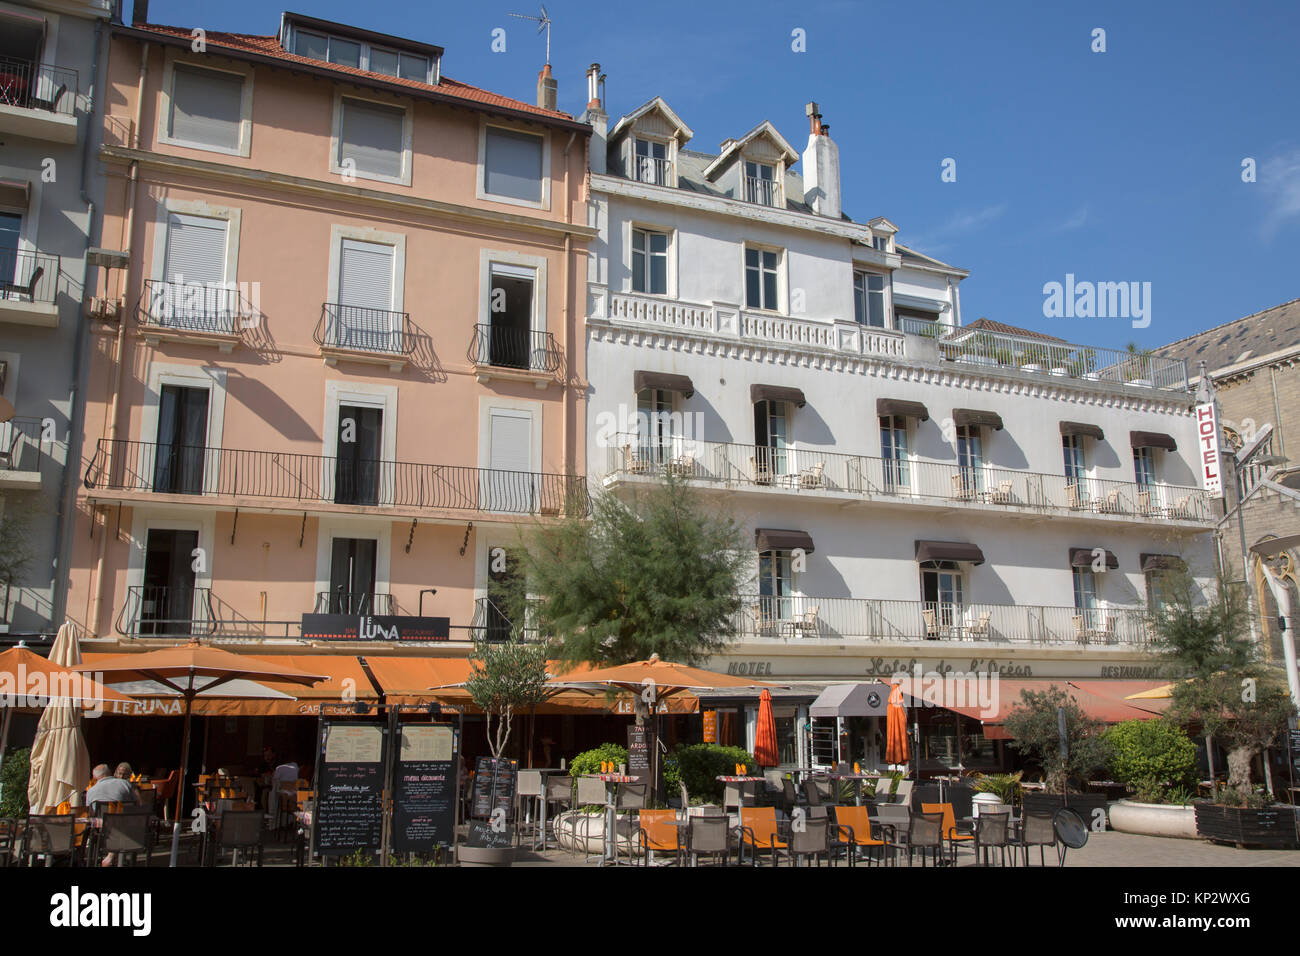 biarritz france cafe stock photos biarritz france cafe stock images alamy. Black Bedroom Furniture Sets. Home Design Ideas